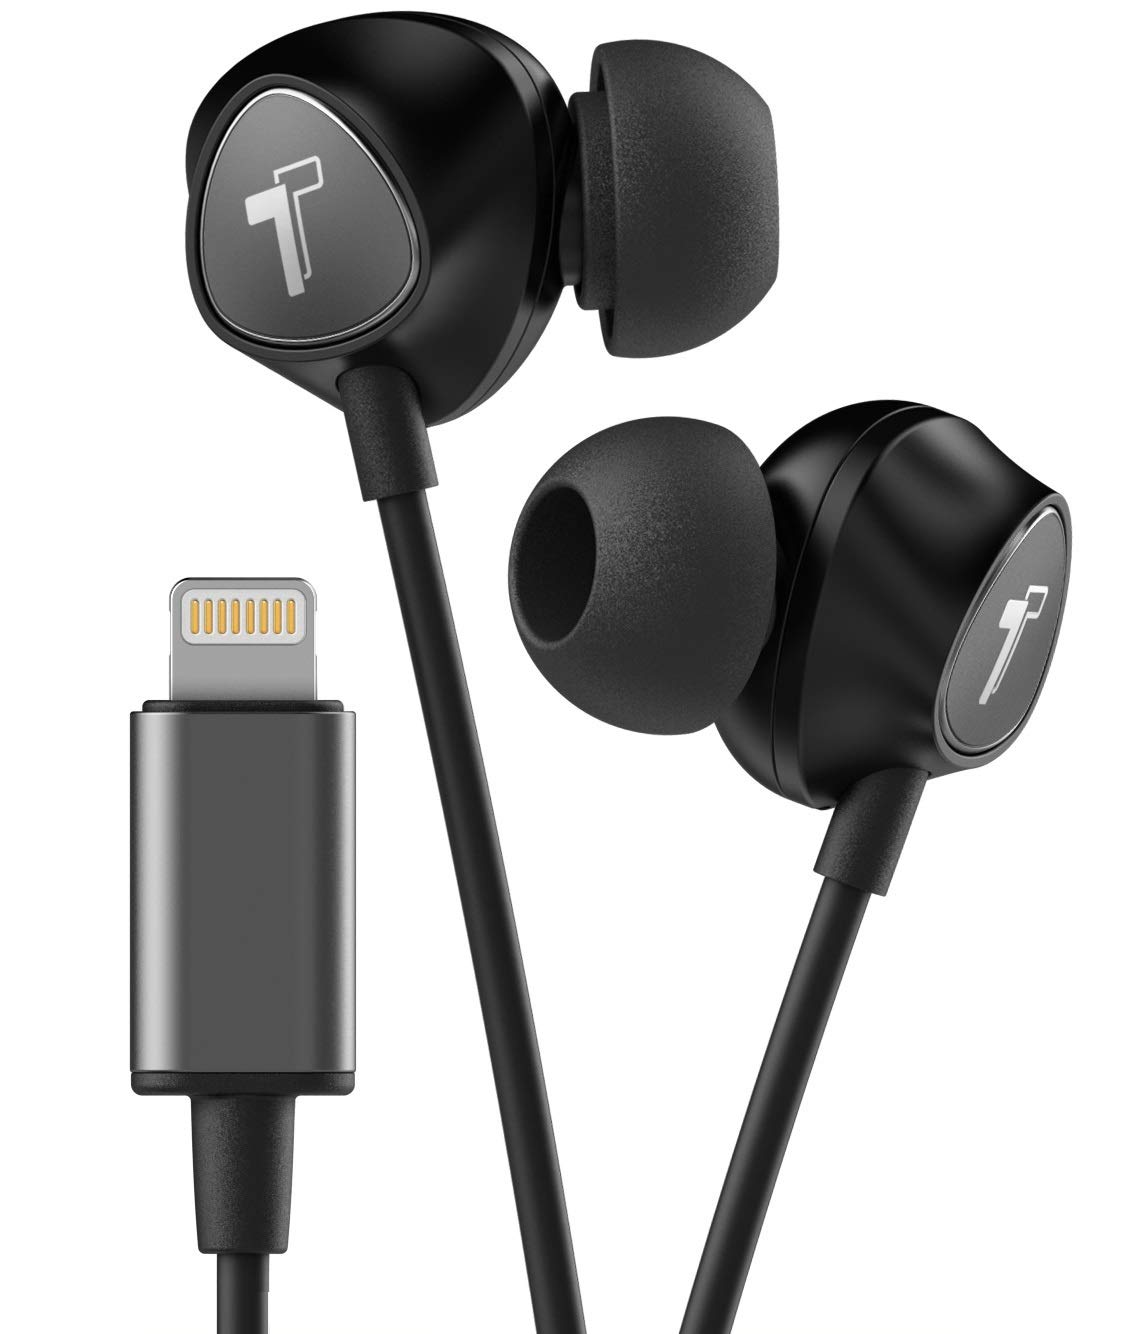 Earbud Headphones Archives - Page 4 of 24 - Earbuds Shop